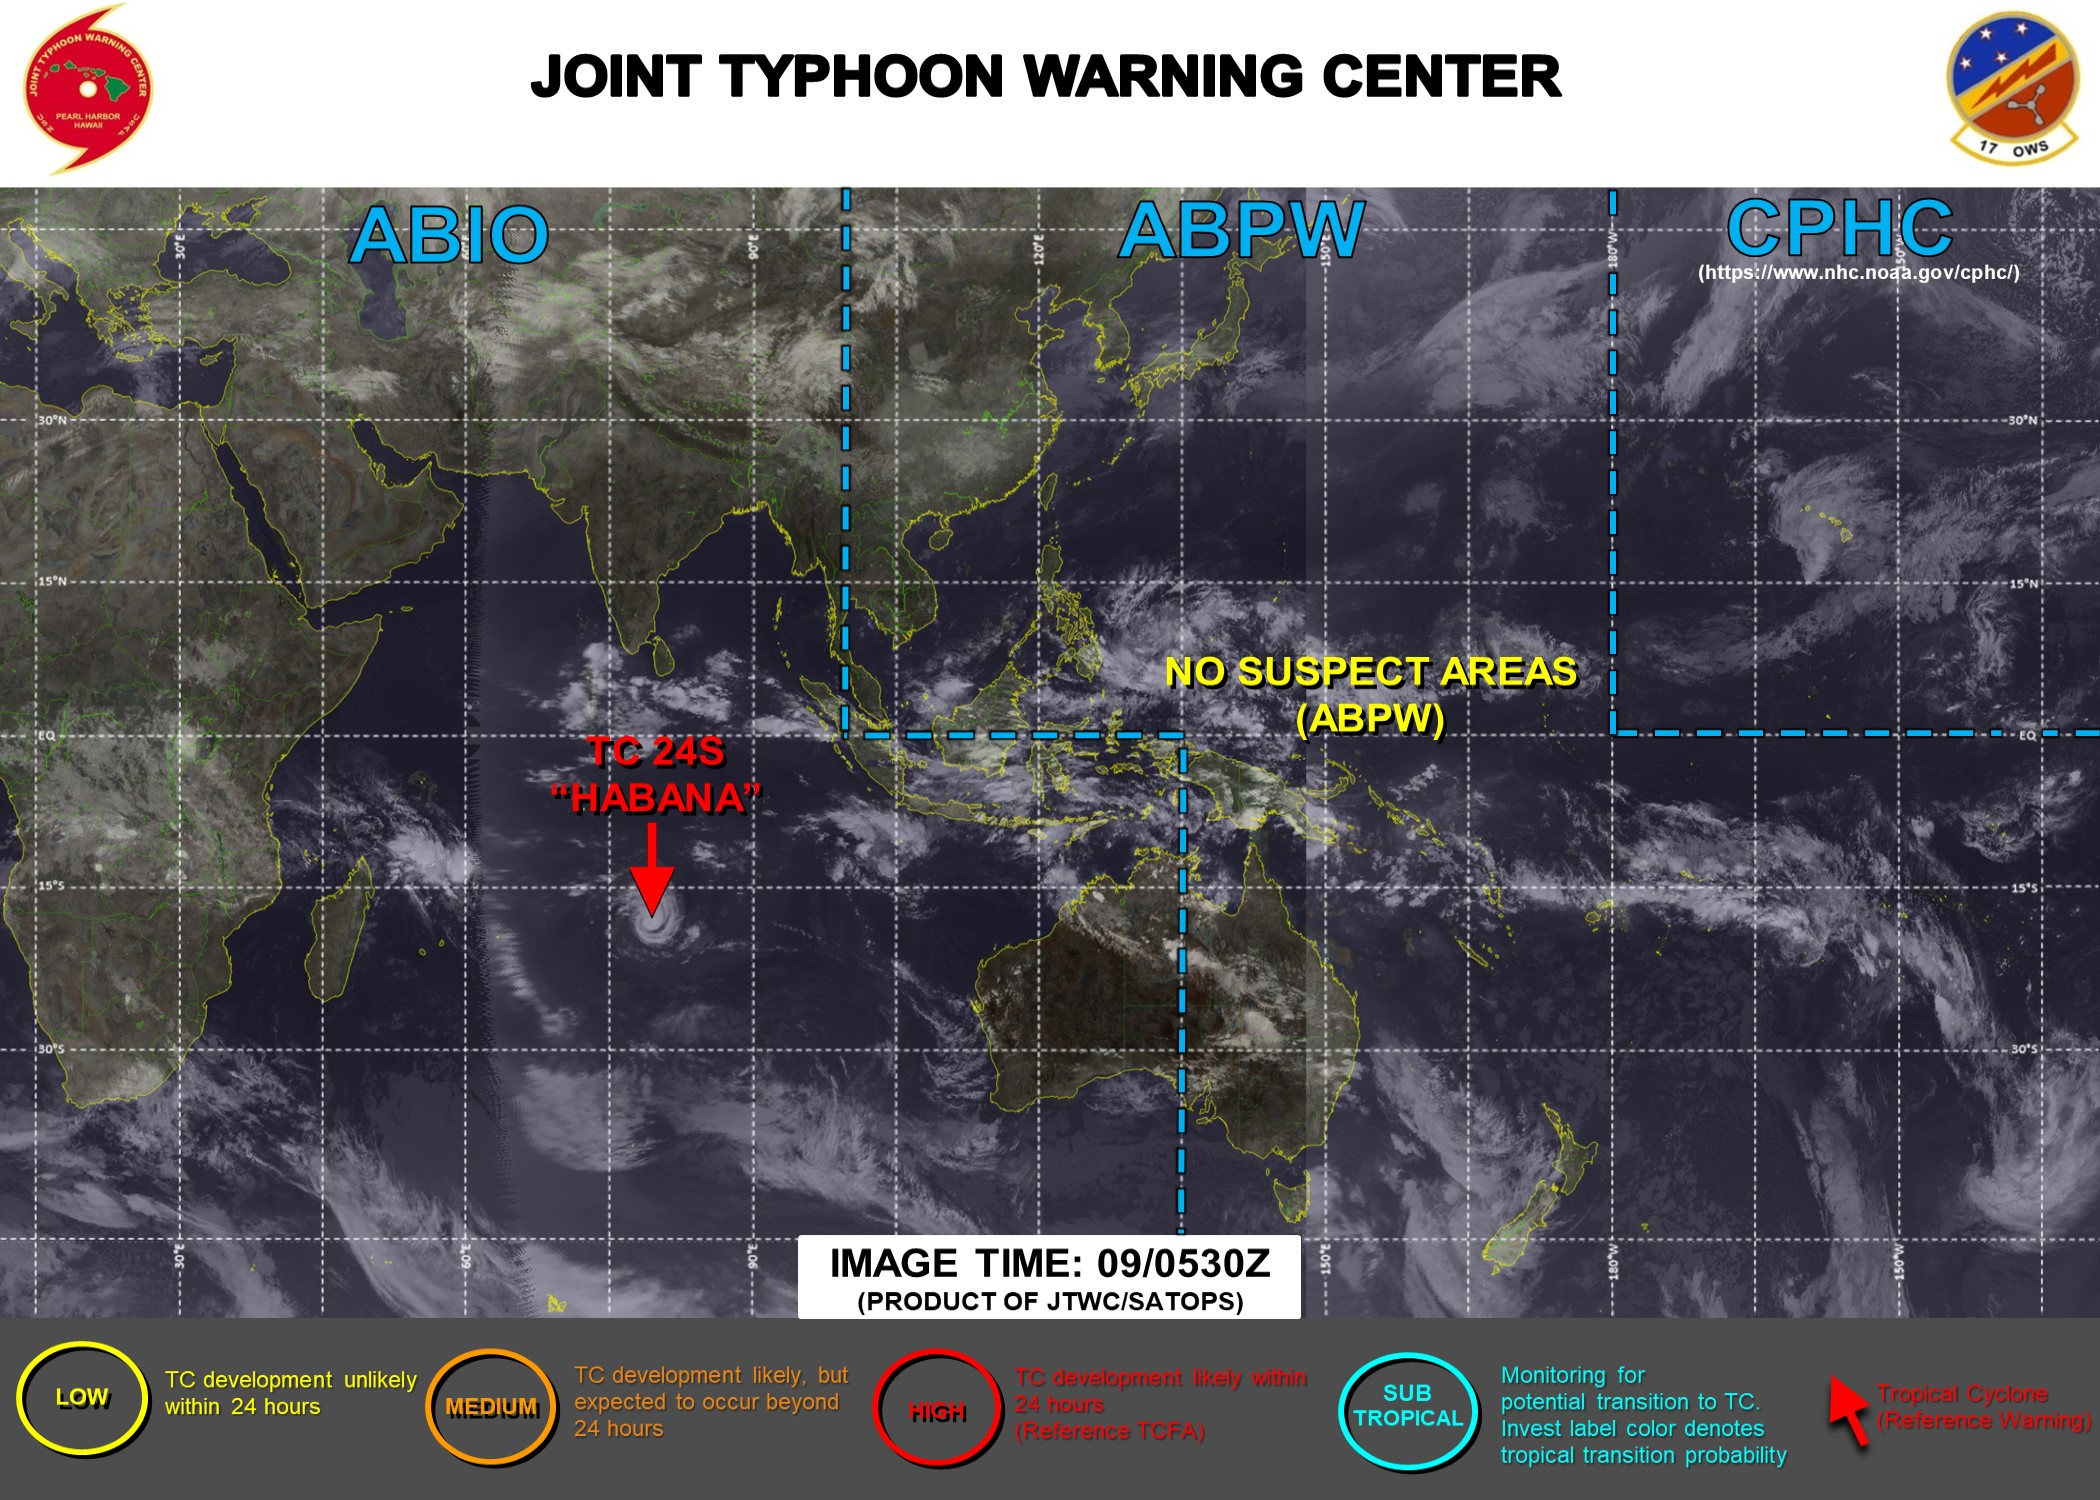 09/09UTC. JTWC IS ISSUING 12HOURLY WARNINGS ON 24S(HABANA) ALONG WITH 3HOURLY SATELLITE BULLETINS. 25S(IMAN) IS DISSIPATED AND WAS REMOVED FROM THE MAP WITH THE SATELLITE BULLETINS DISCONTINUED AT 09/0515UTC.